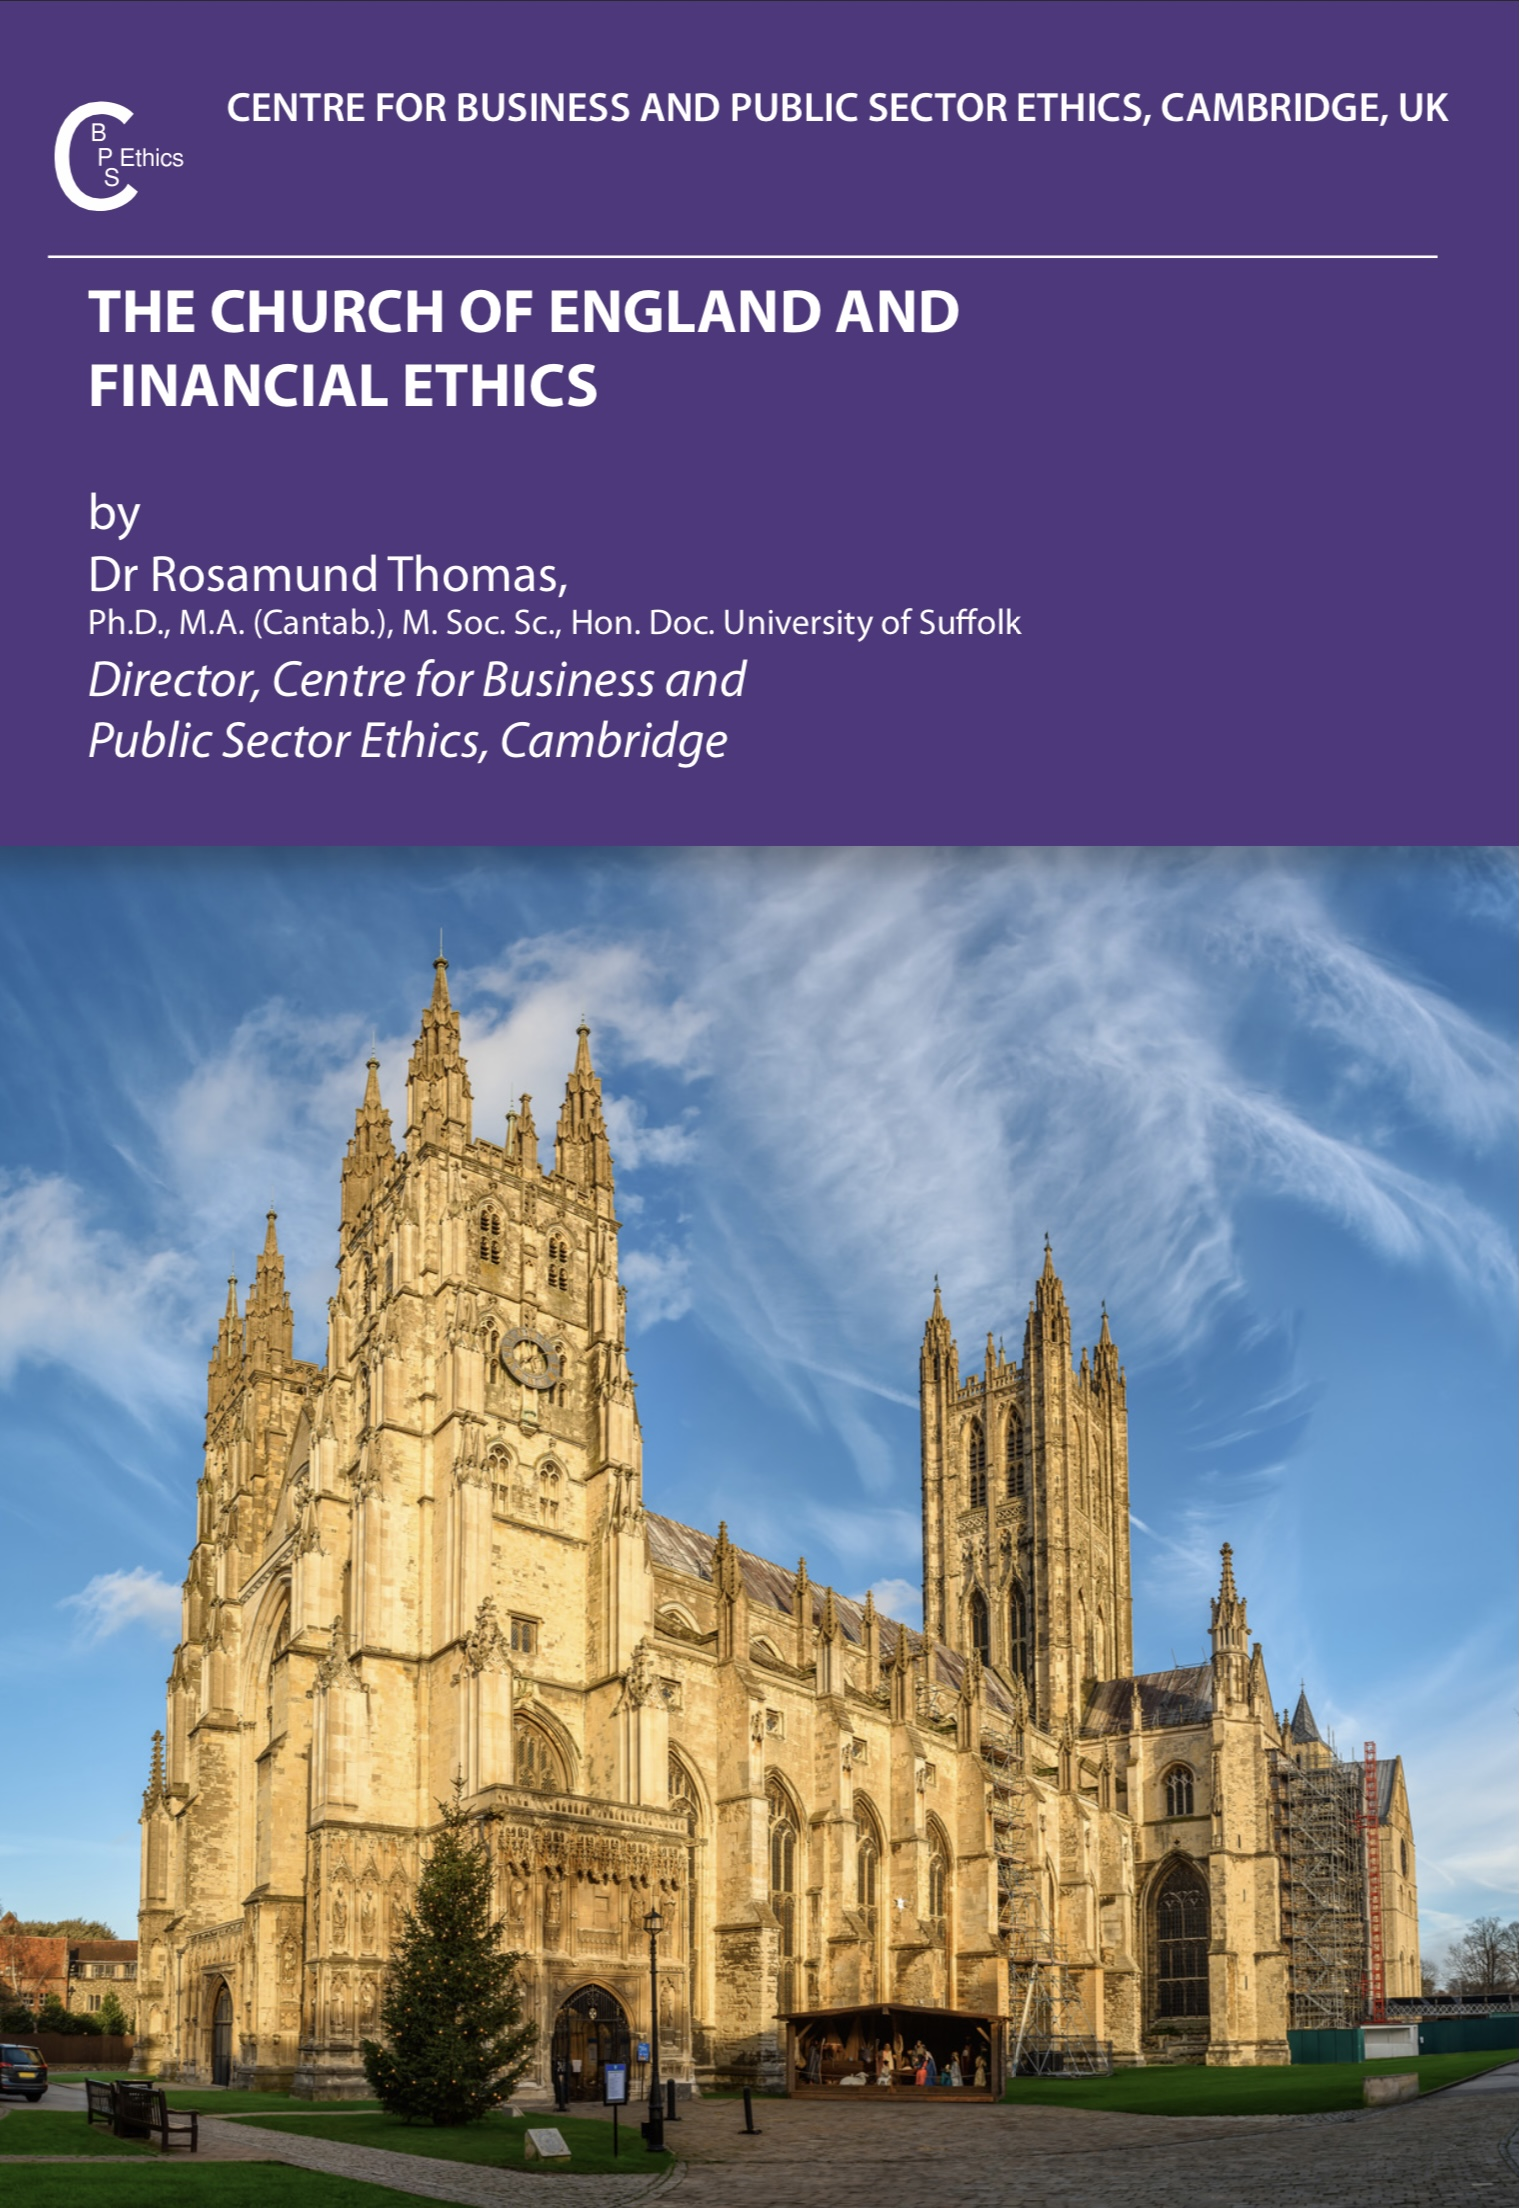 The Church of England and Financial Ethics